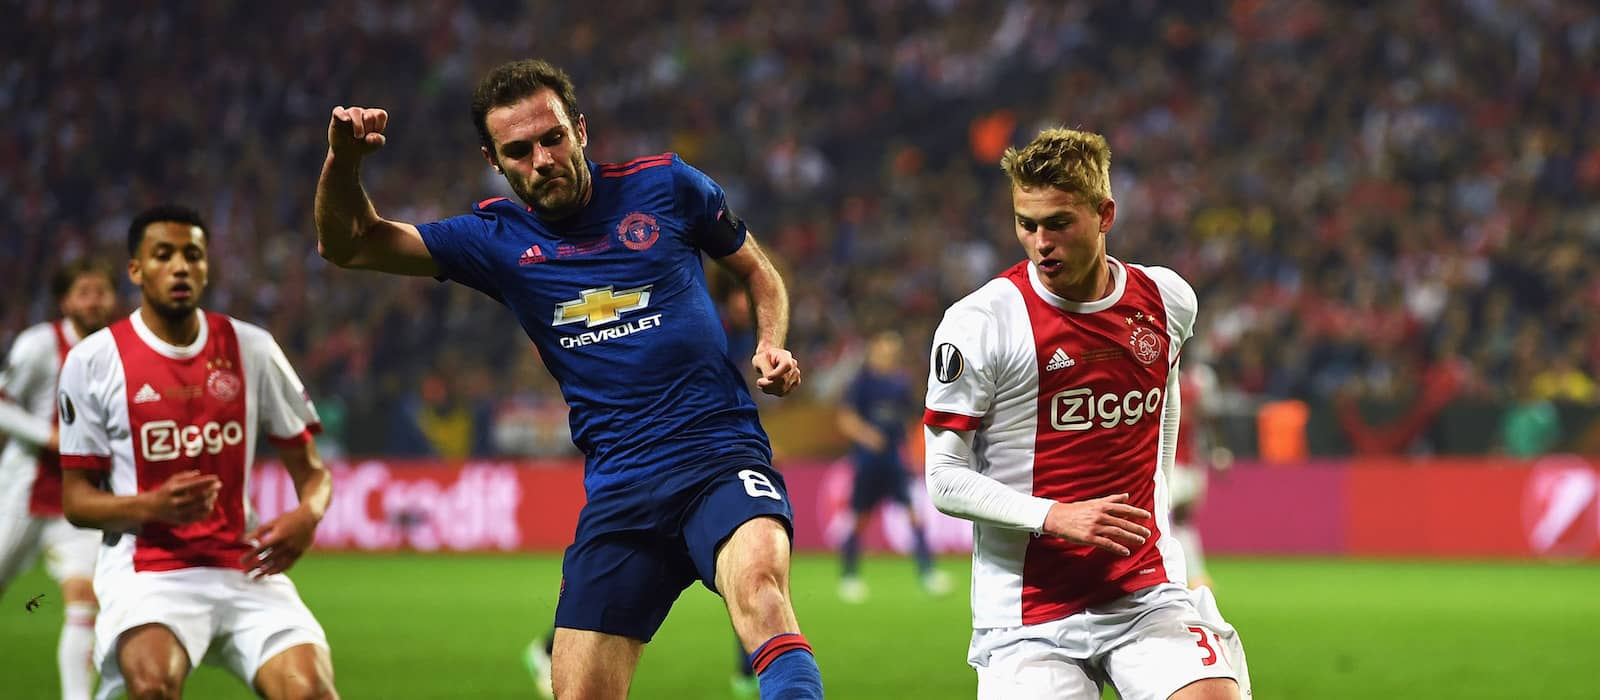 Jose Mourinho provides injury update for Juan Mata following Salt Lake City win